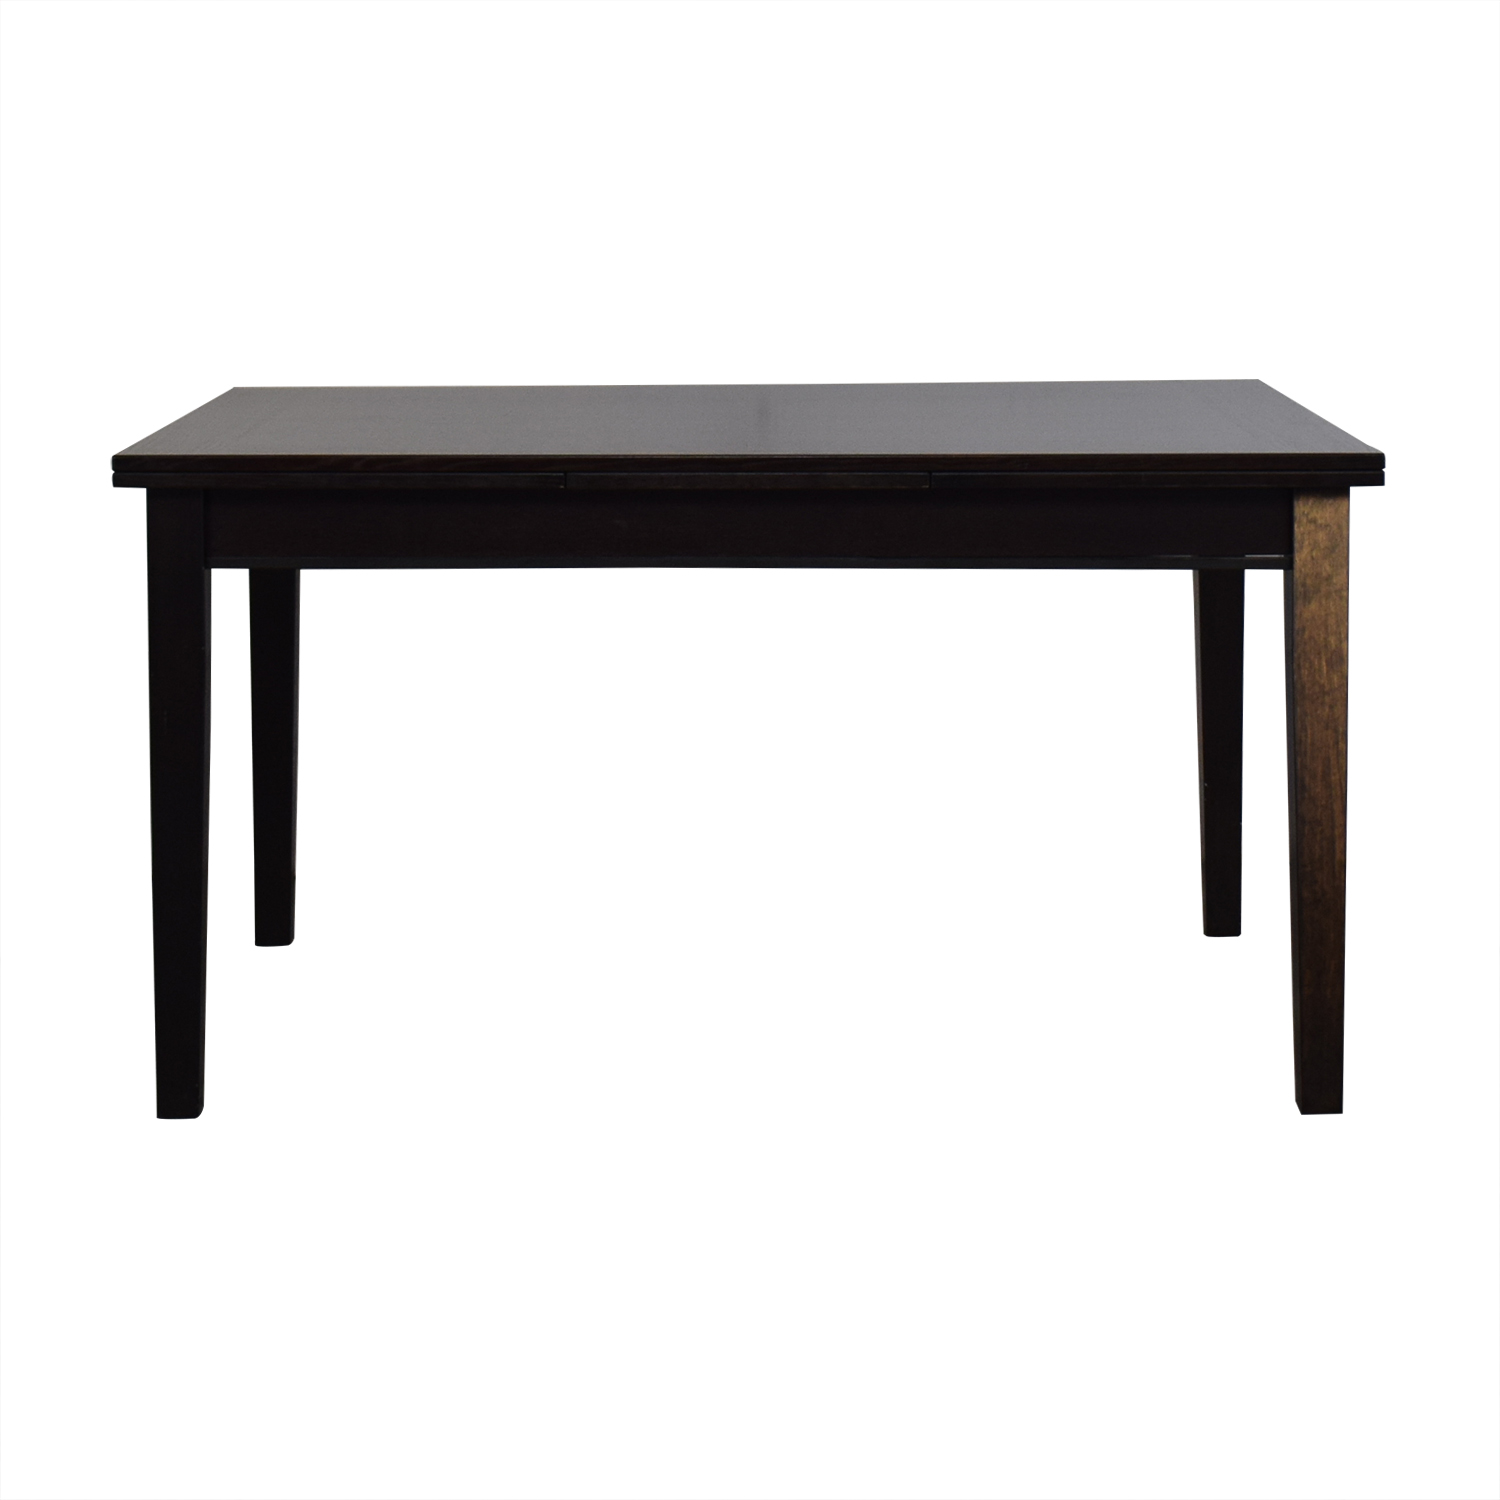 shop Crate & Barrel Crate & Barrel Pratico Bruno Extension Square Dining Table online